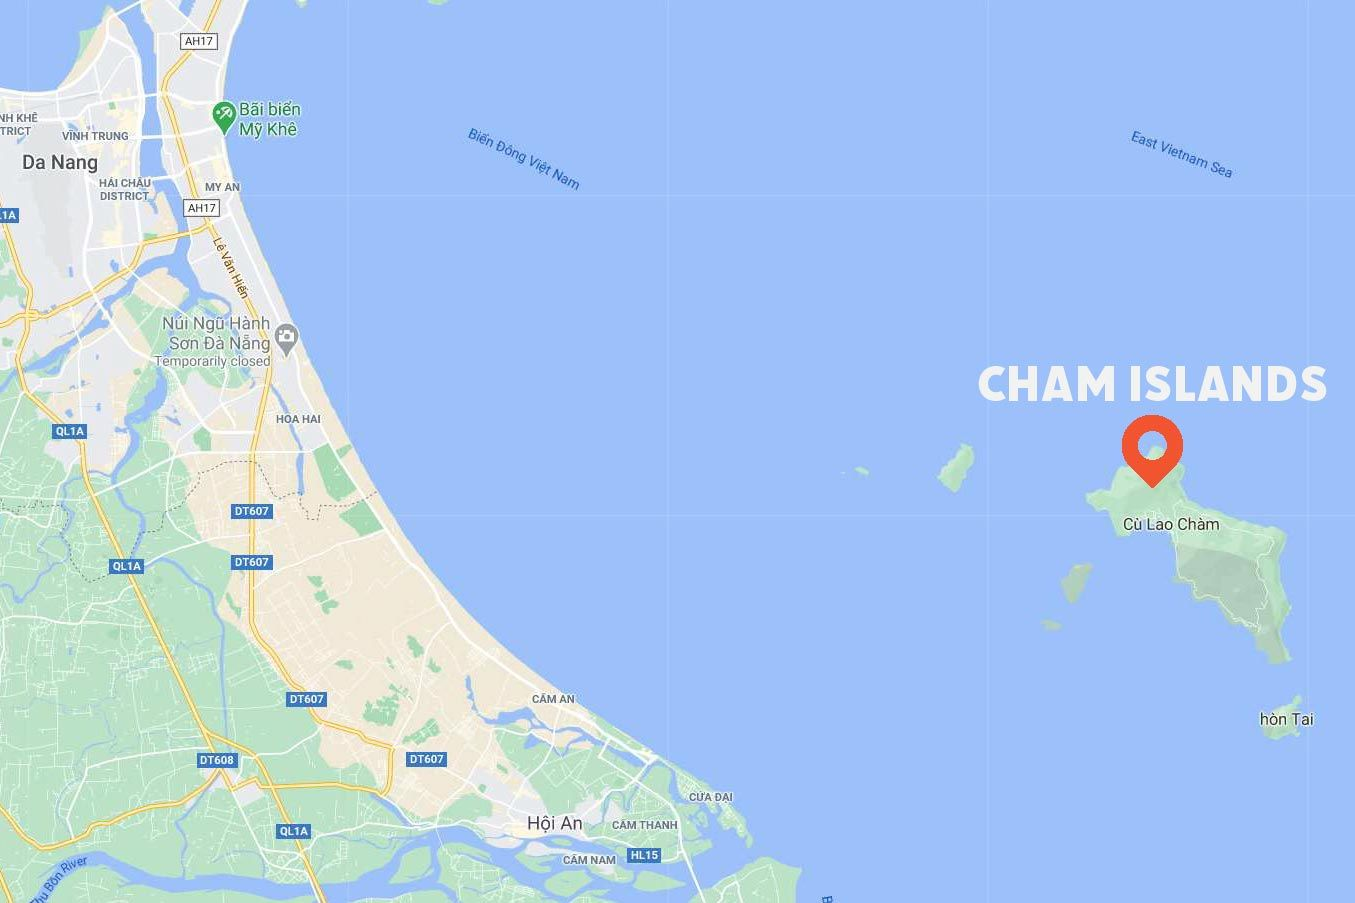 Map showing location of Cham Islands